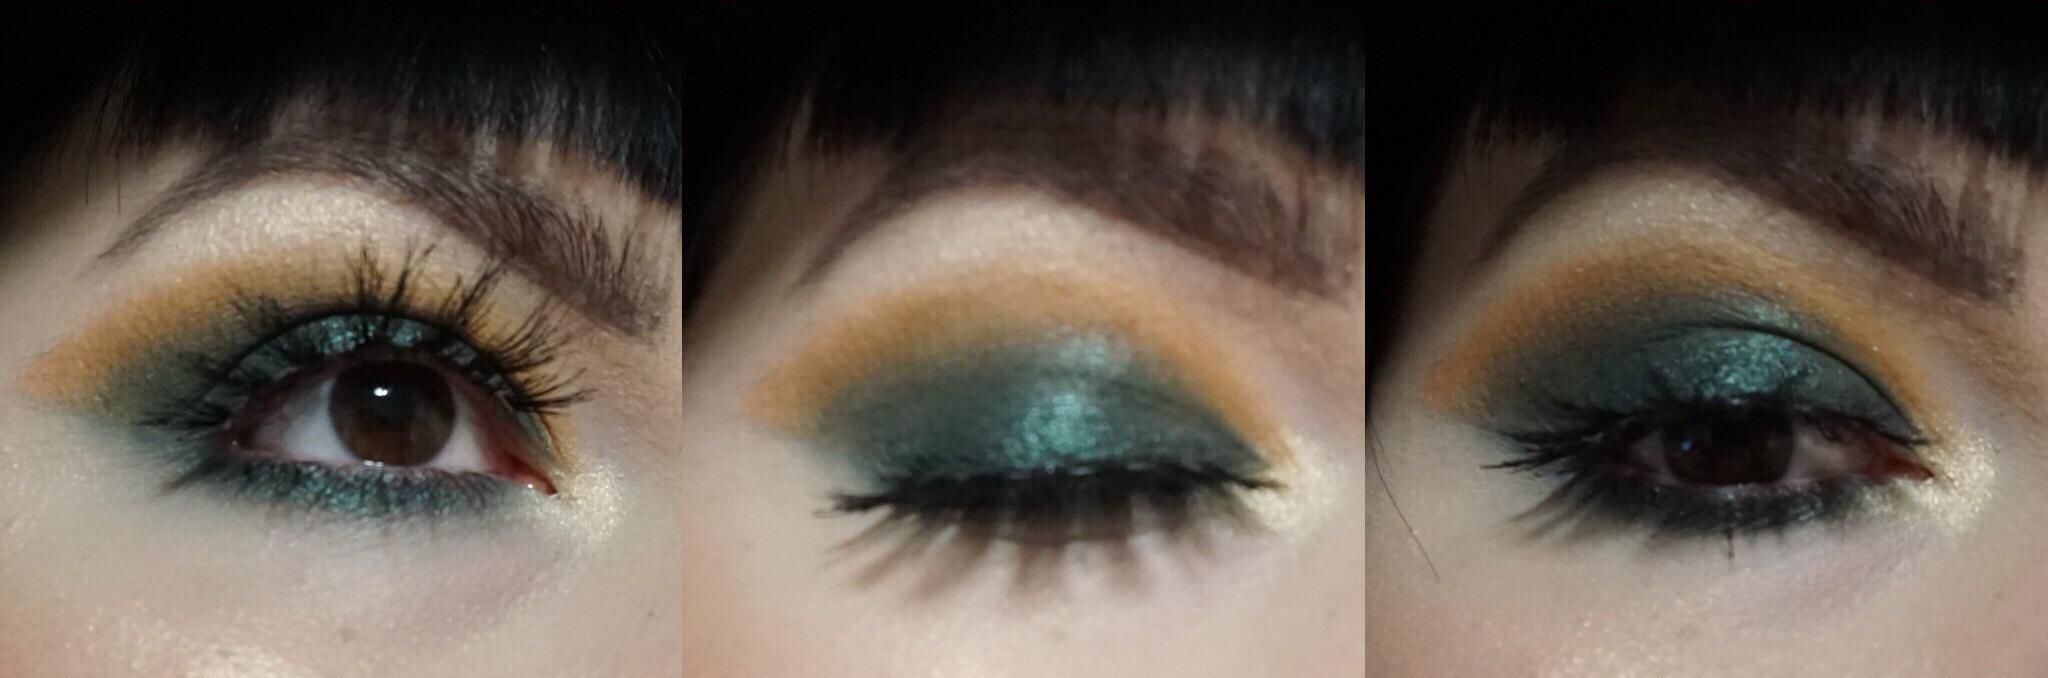 Late night messing around with Subculture